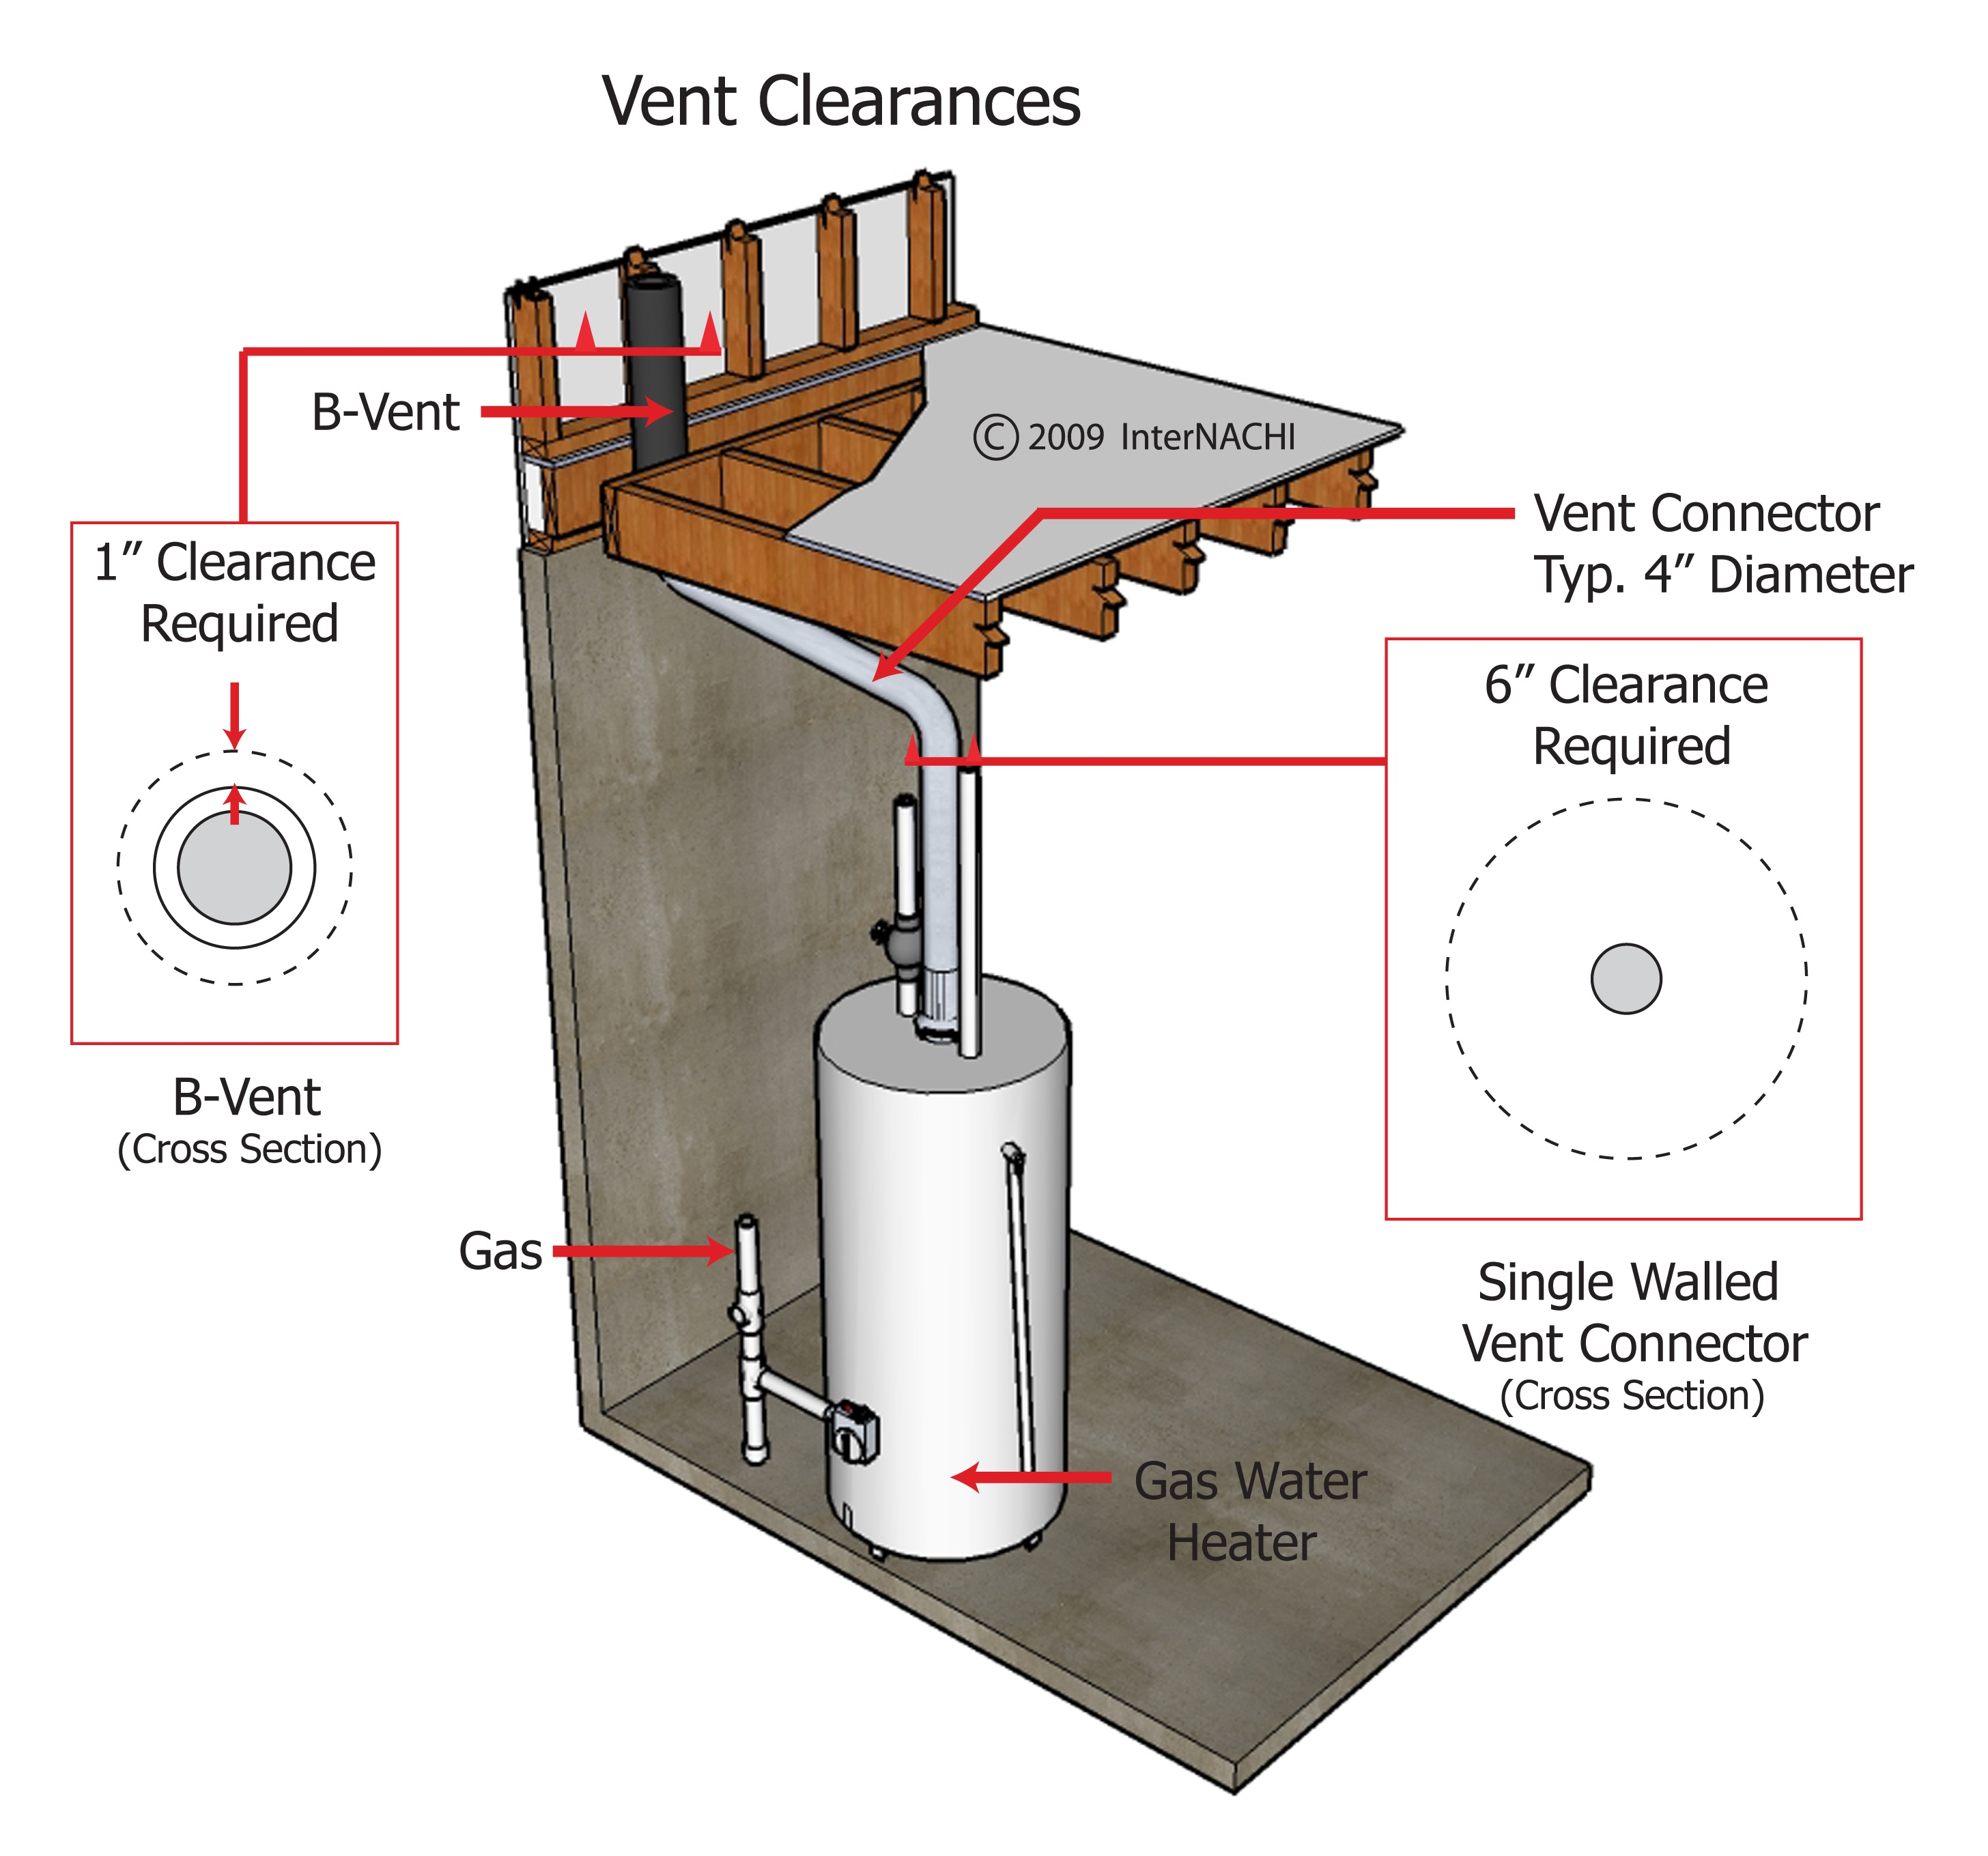 How to vent a hot water heater - Vent Clearances Gas